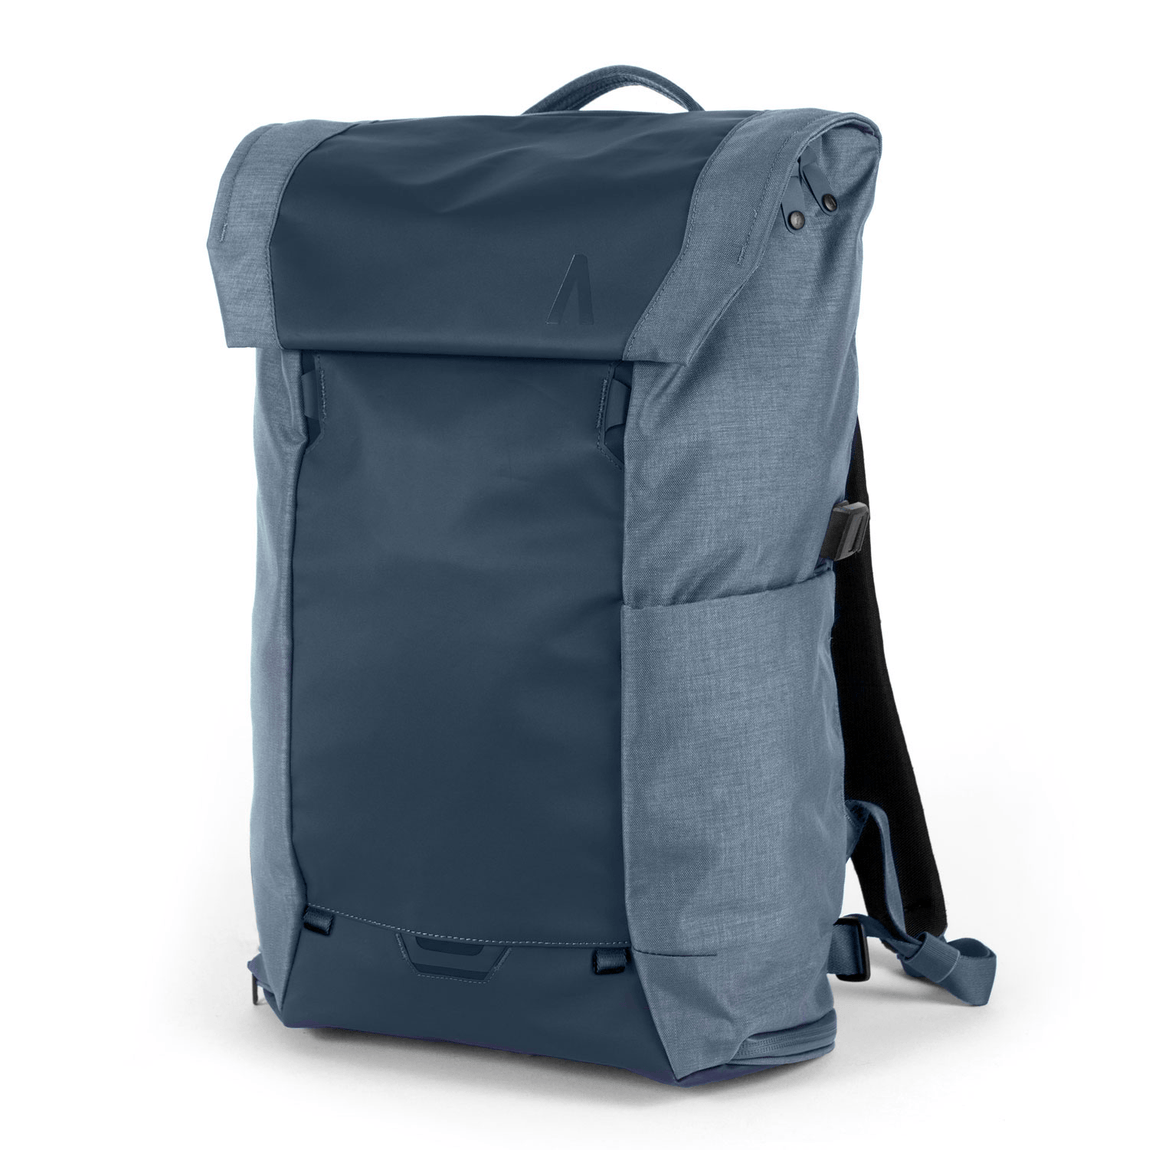 bb5ad05f3 THE ERRANT PACK – Boundary Supply